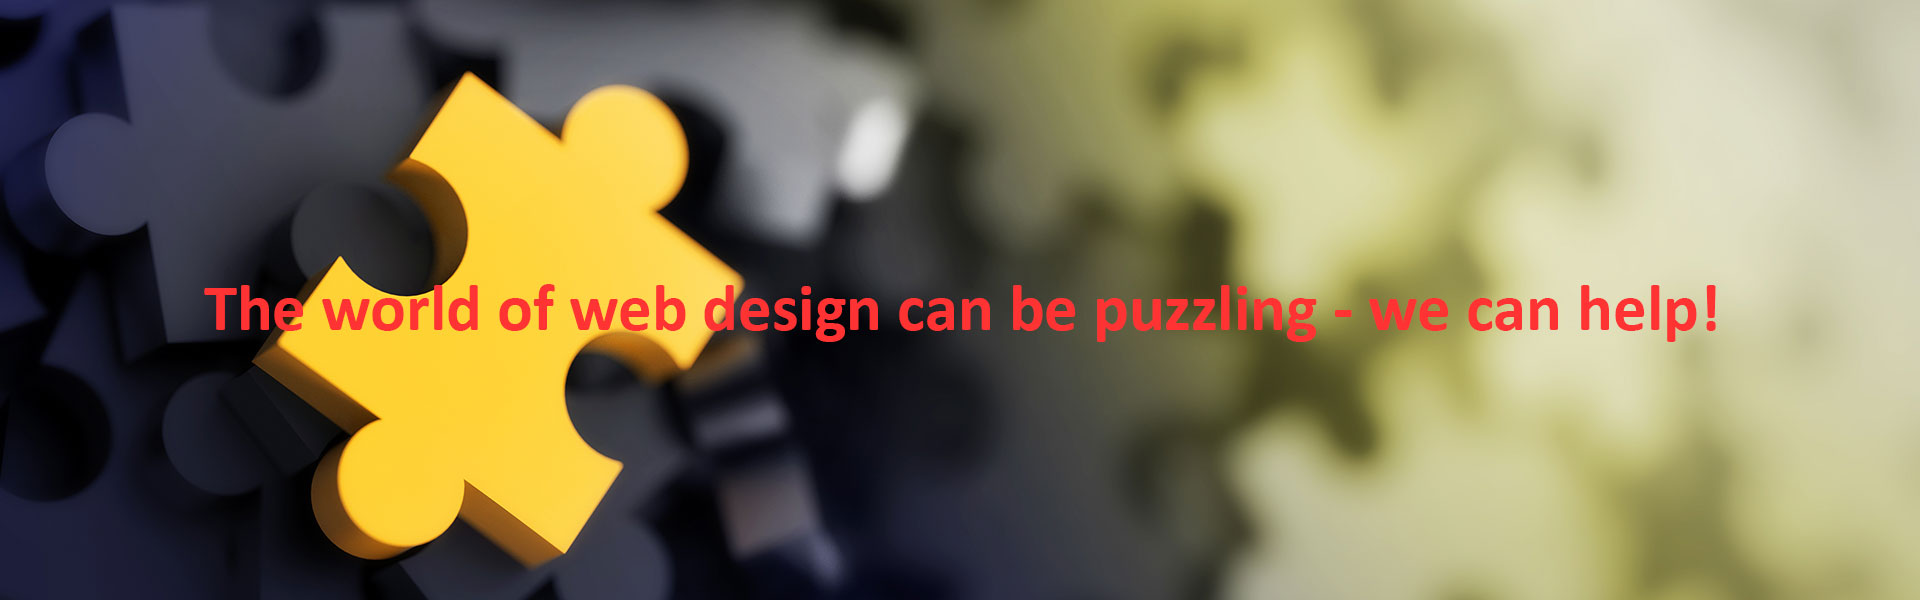 Affordable Web Design will help you deal with the puzzling world of web design and development!